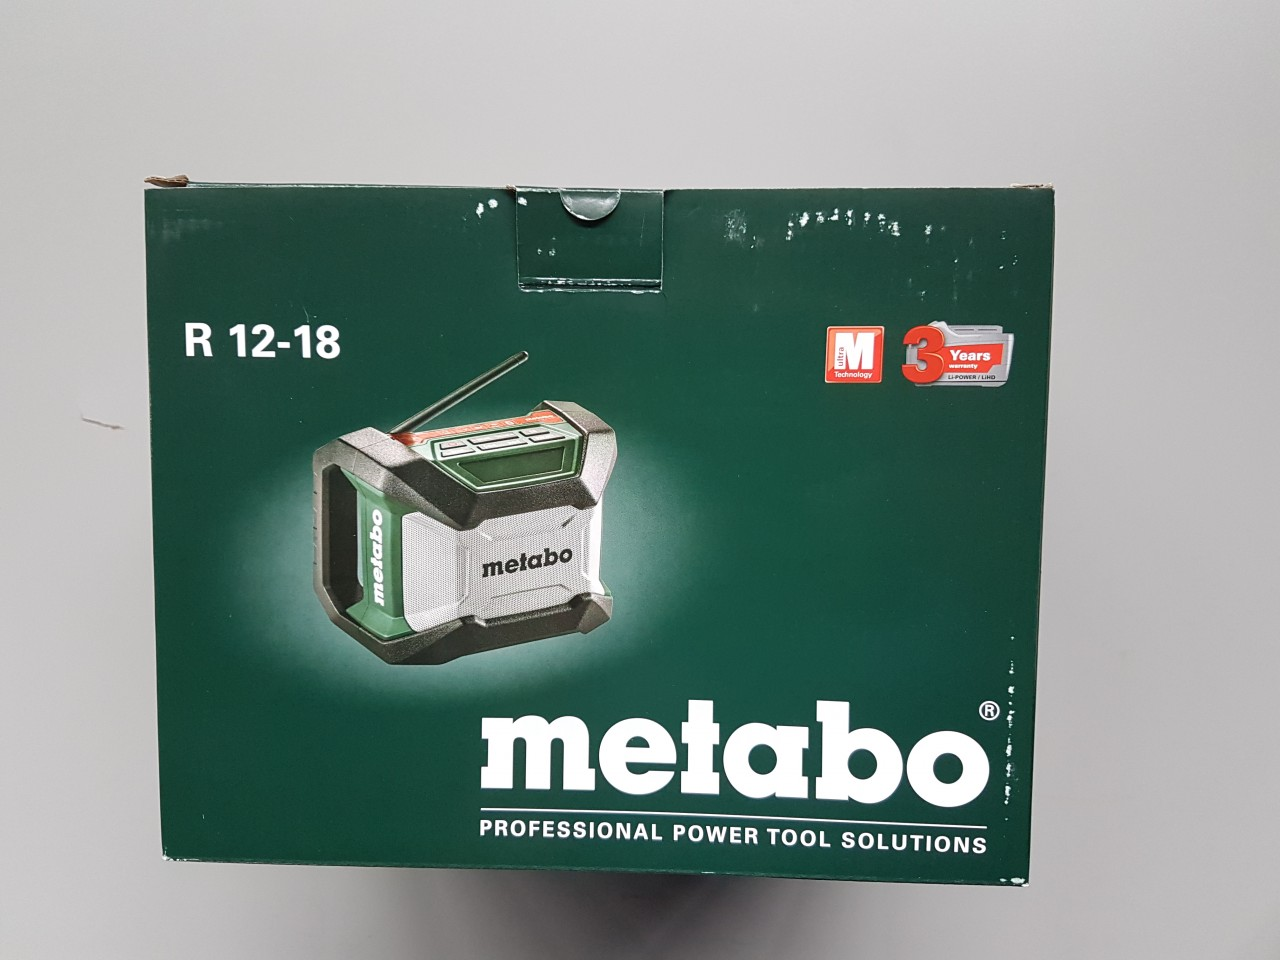 Metabo bouwradio